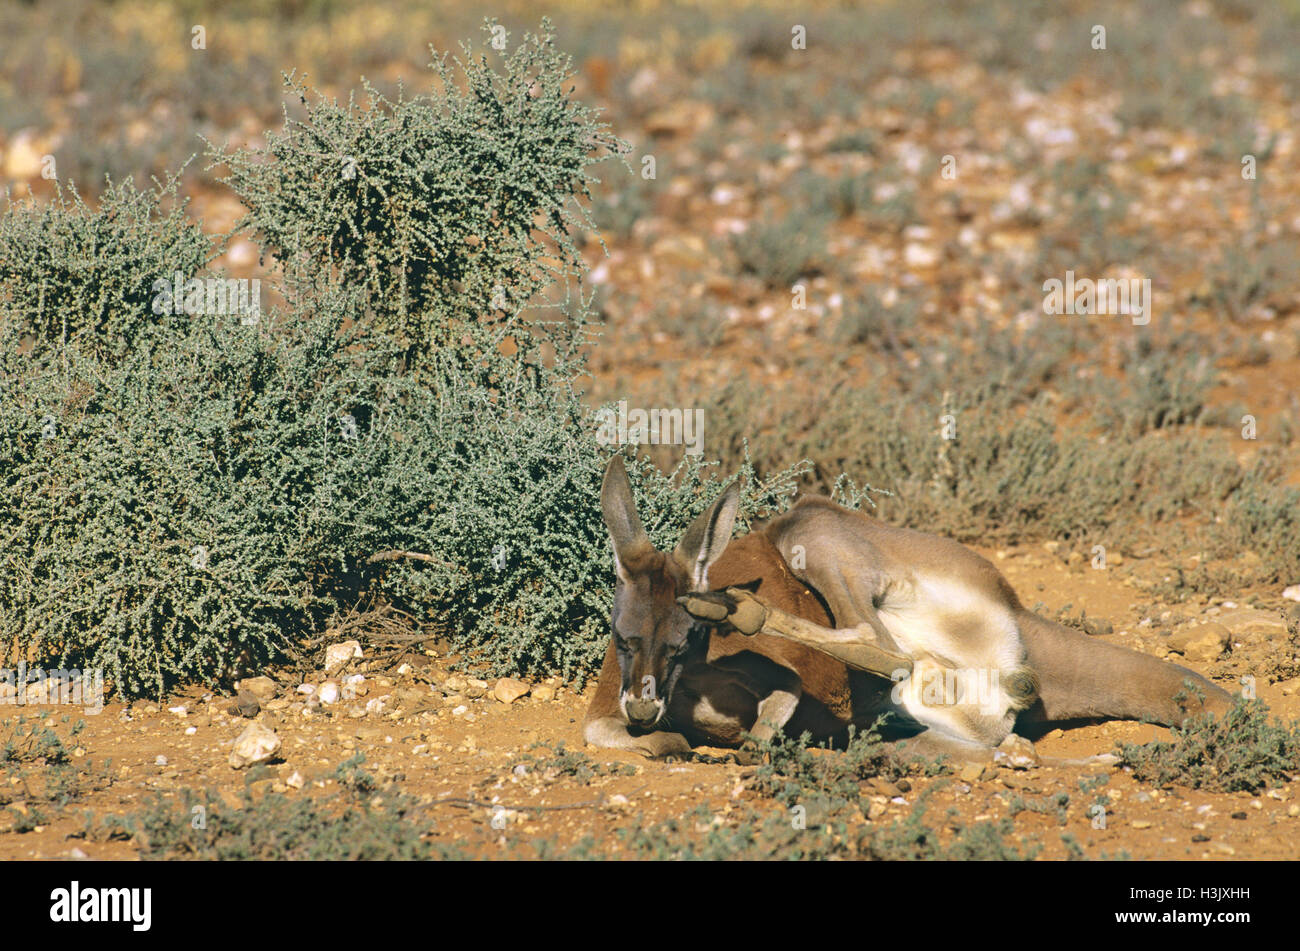 Kangourou rouge (Macropus rufus) Photo Stock